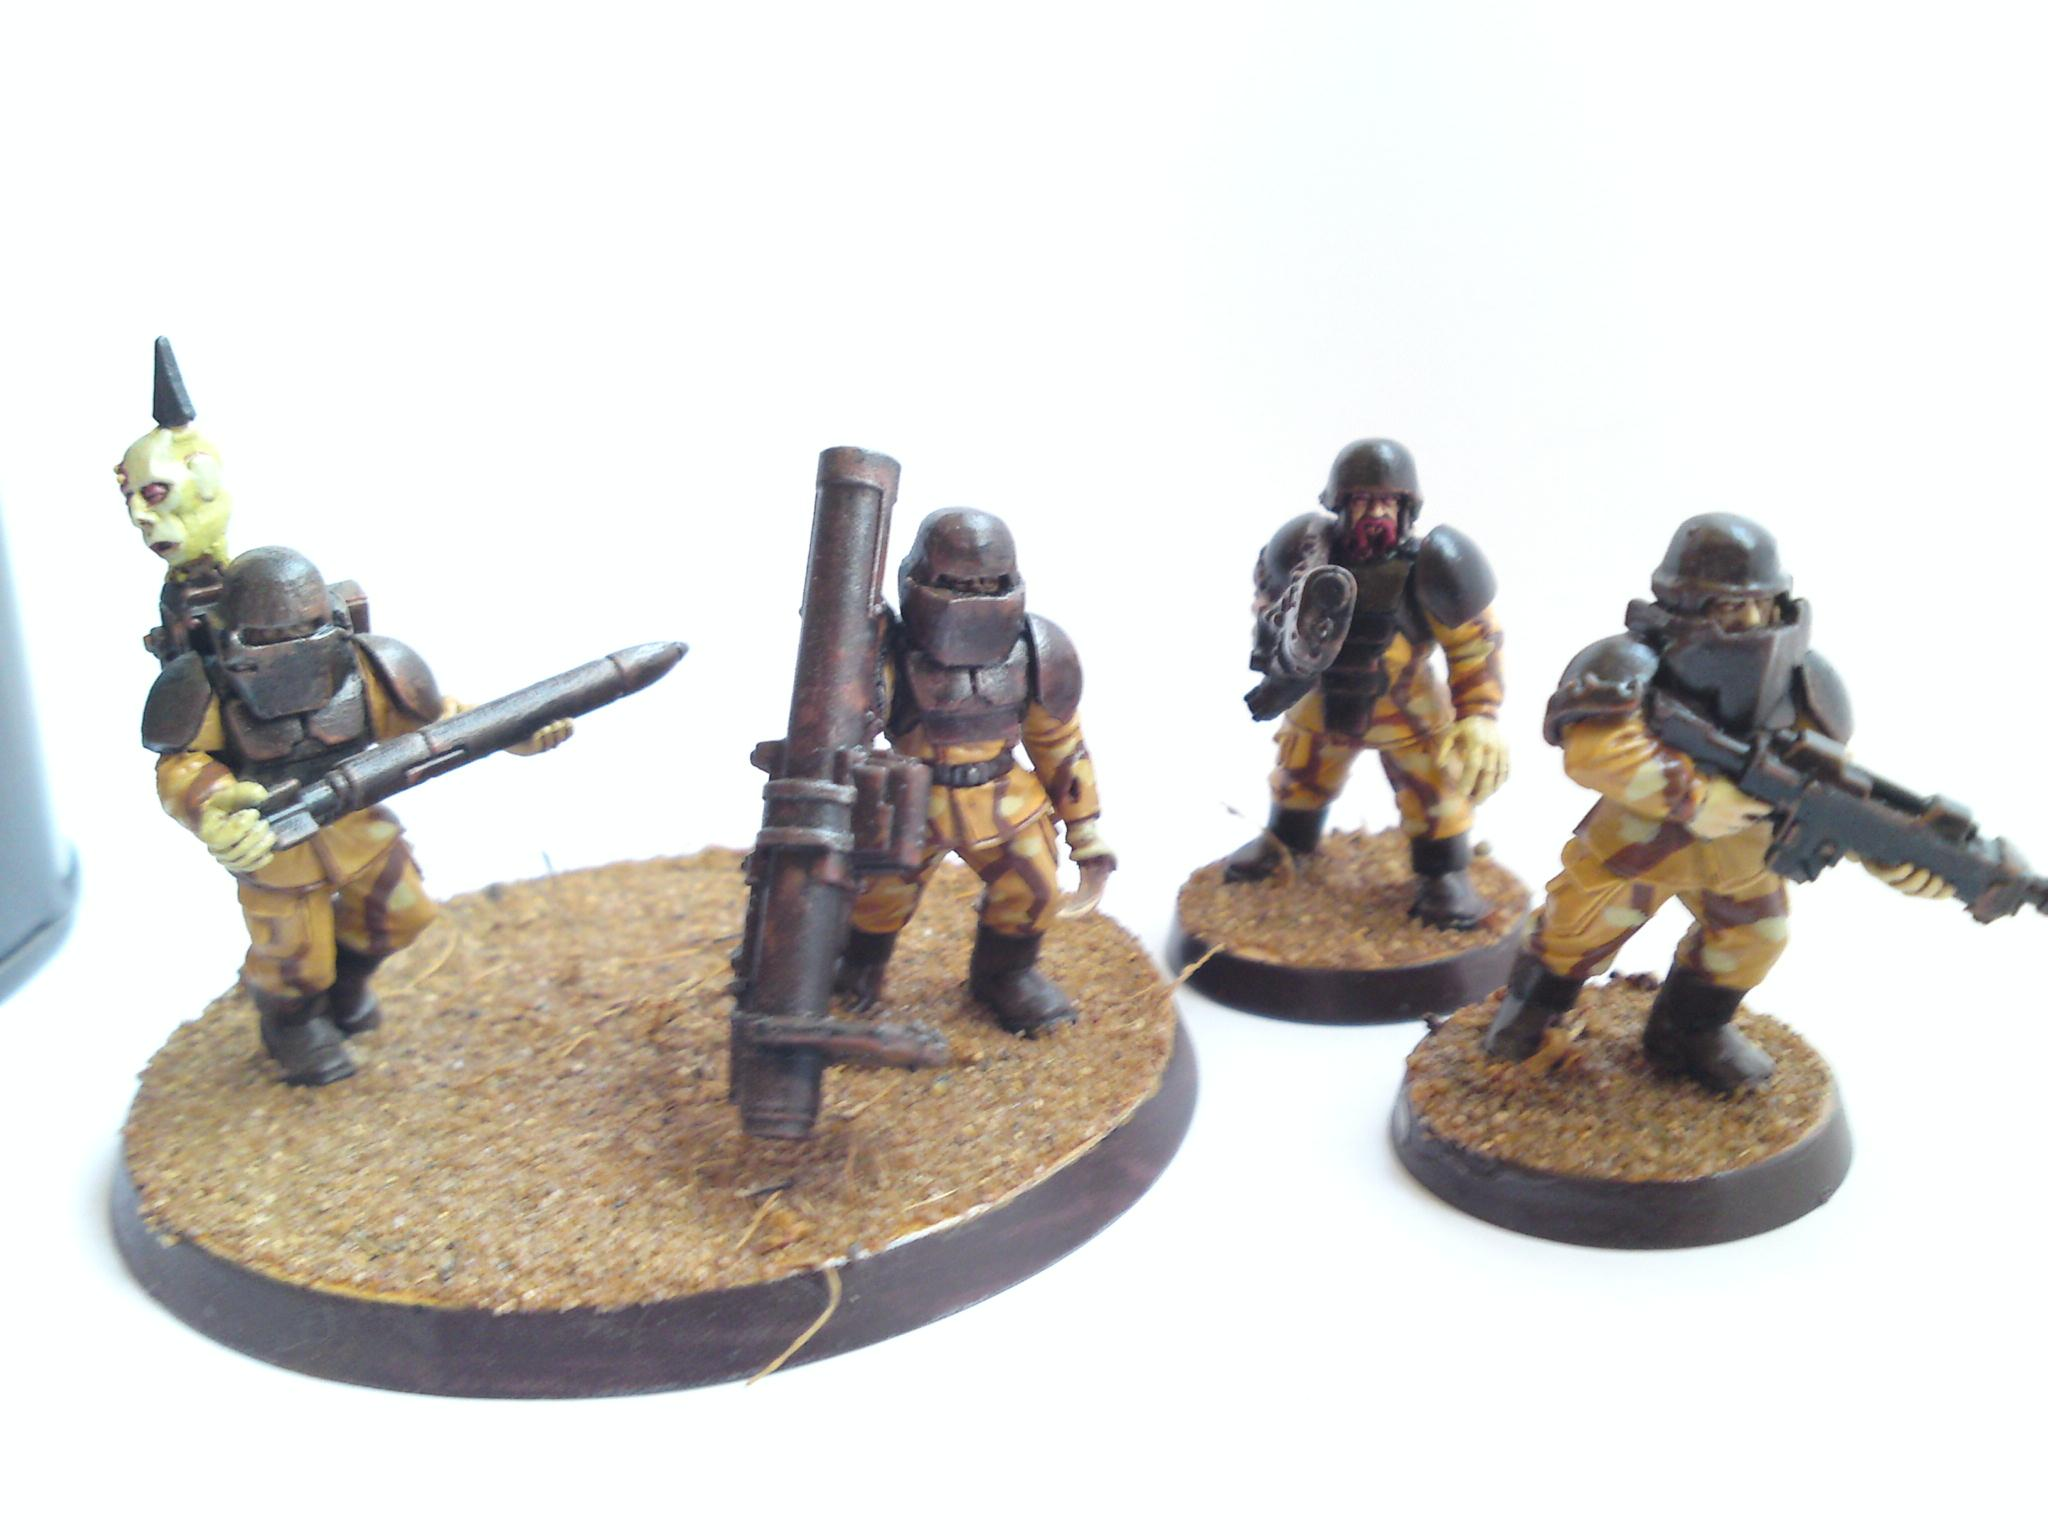 Chaos, Conversion, Facial Hair, Imperial Guard, Lost And The Damned, Missile Launcher, Traitor Guard, Warhammer 40,000